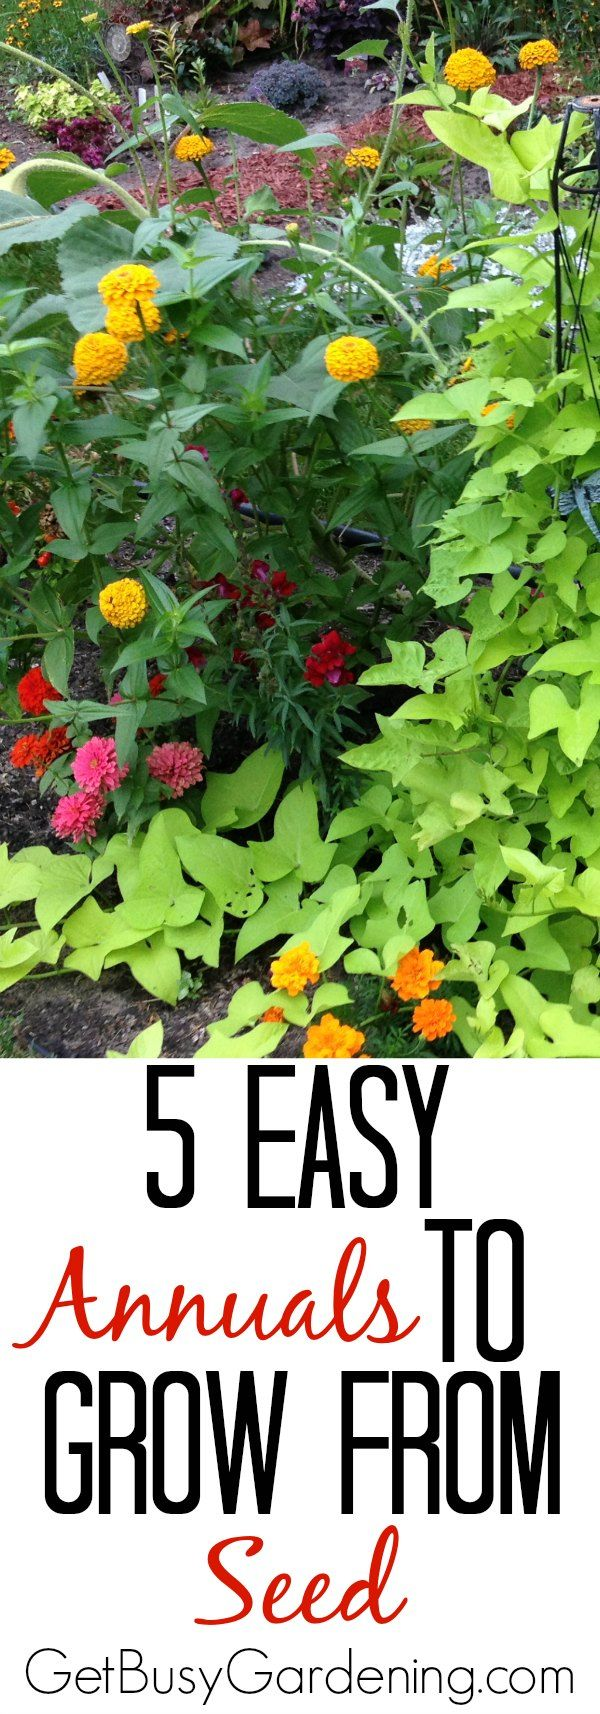 13 easy annual flowers to grow from seed gardening seeds pinterest growing seeds annual. Black Bedroom Furniture Sets. Home Design Ideas